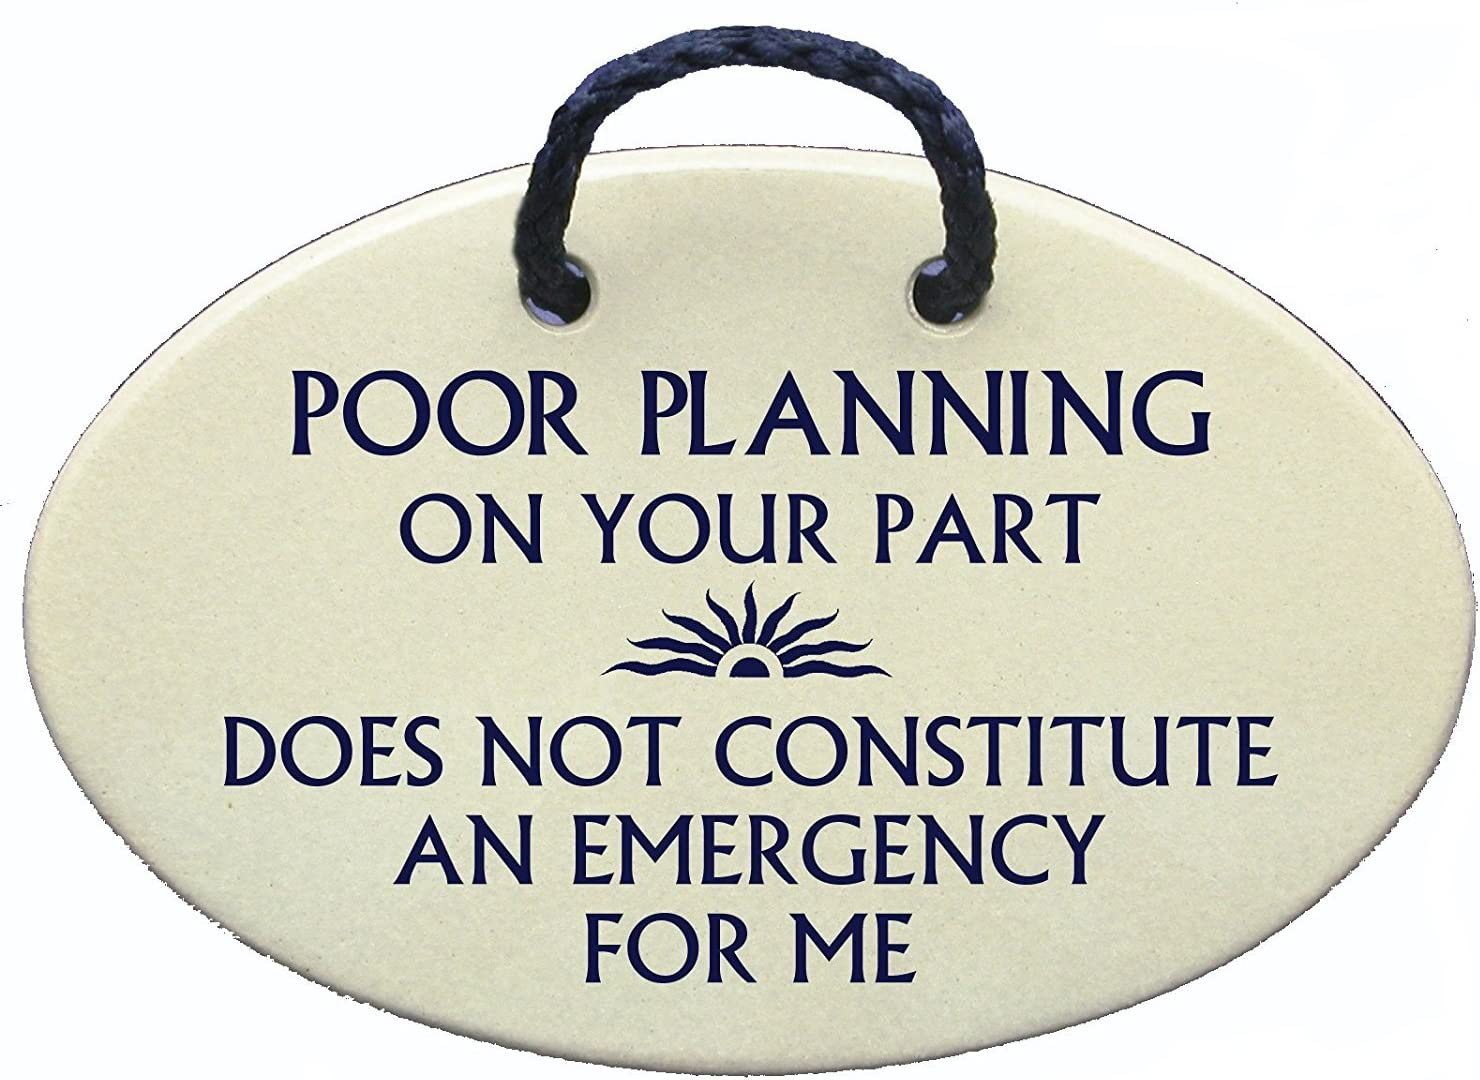 Poor planning on your part does not constitute an emergency for me. Ceramic wall plaques handmade in the USA for over 30 years.